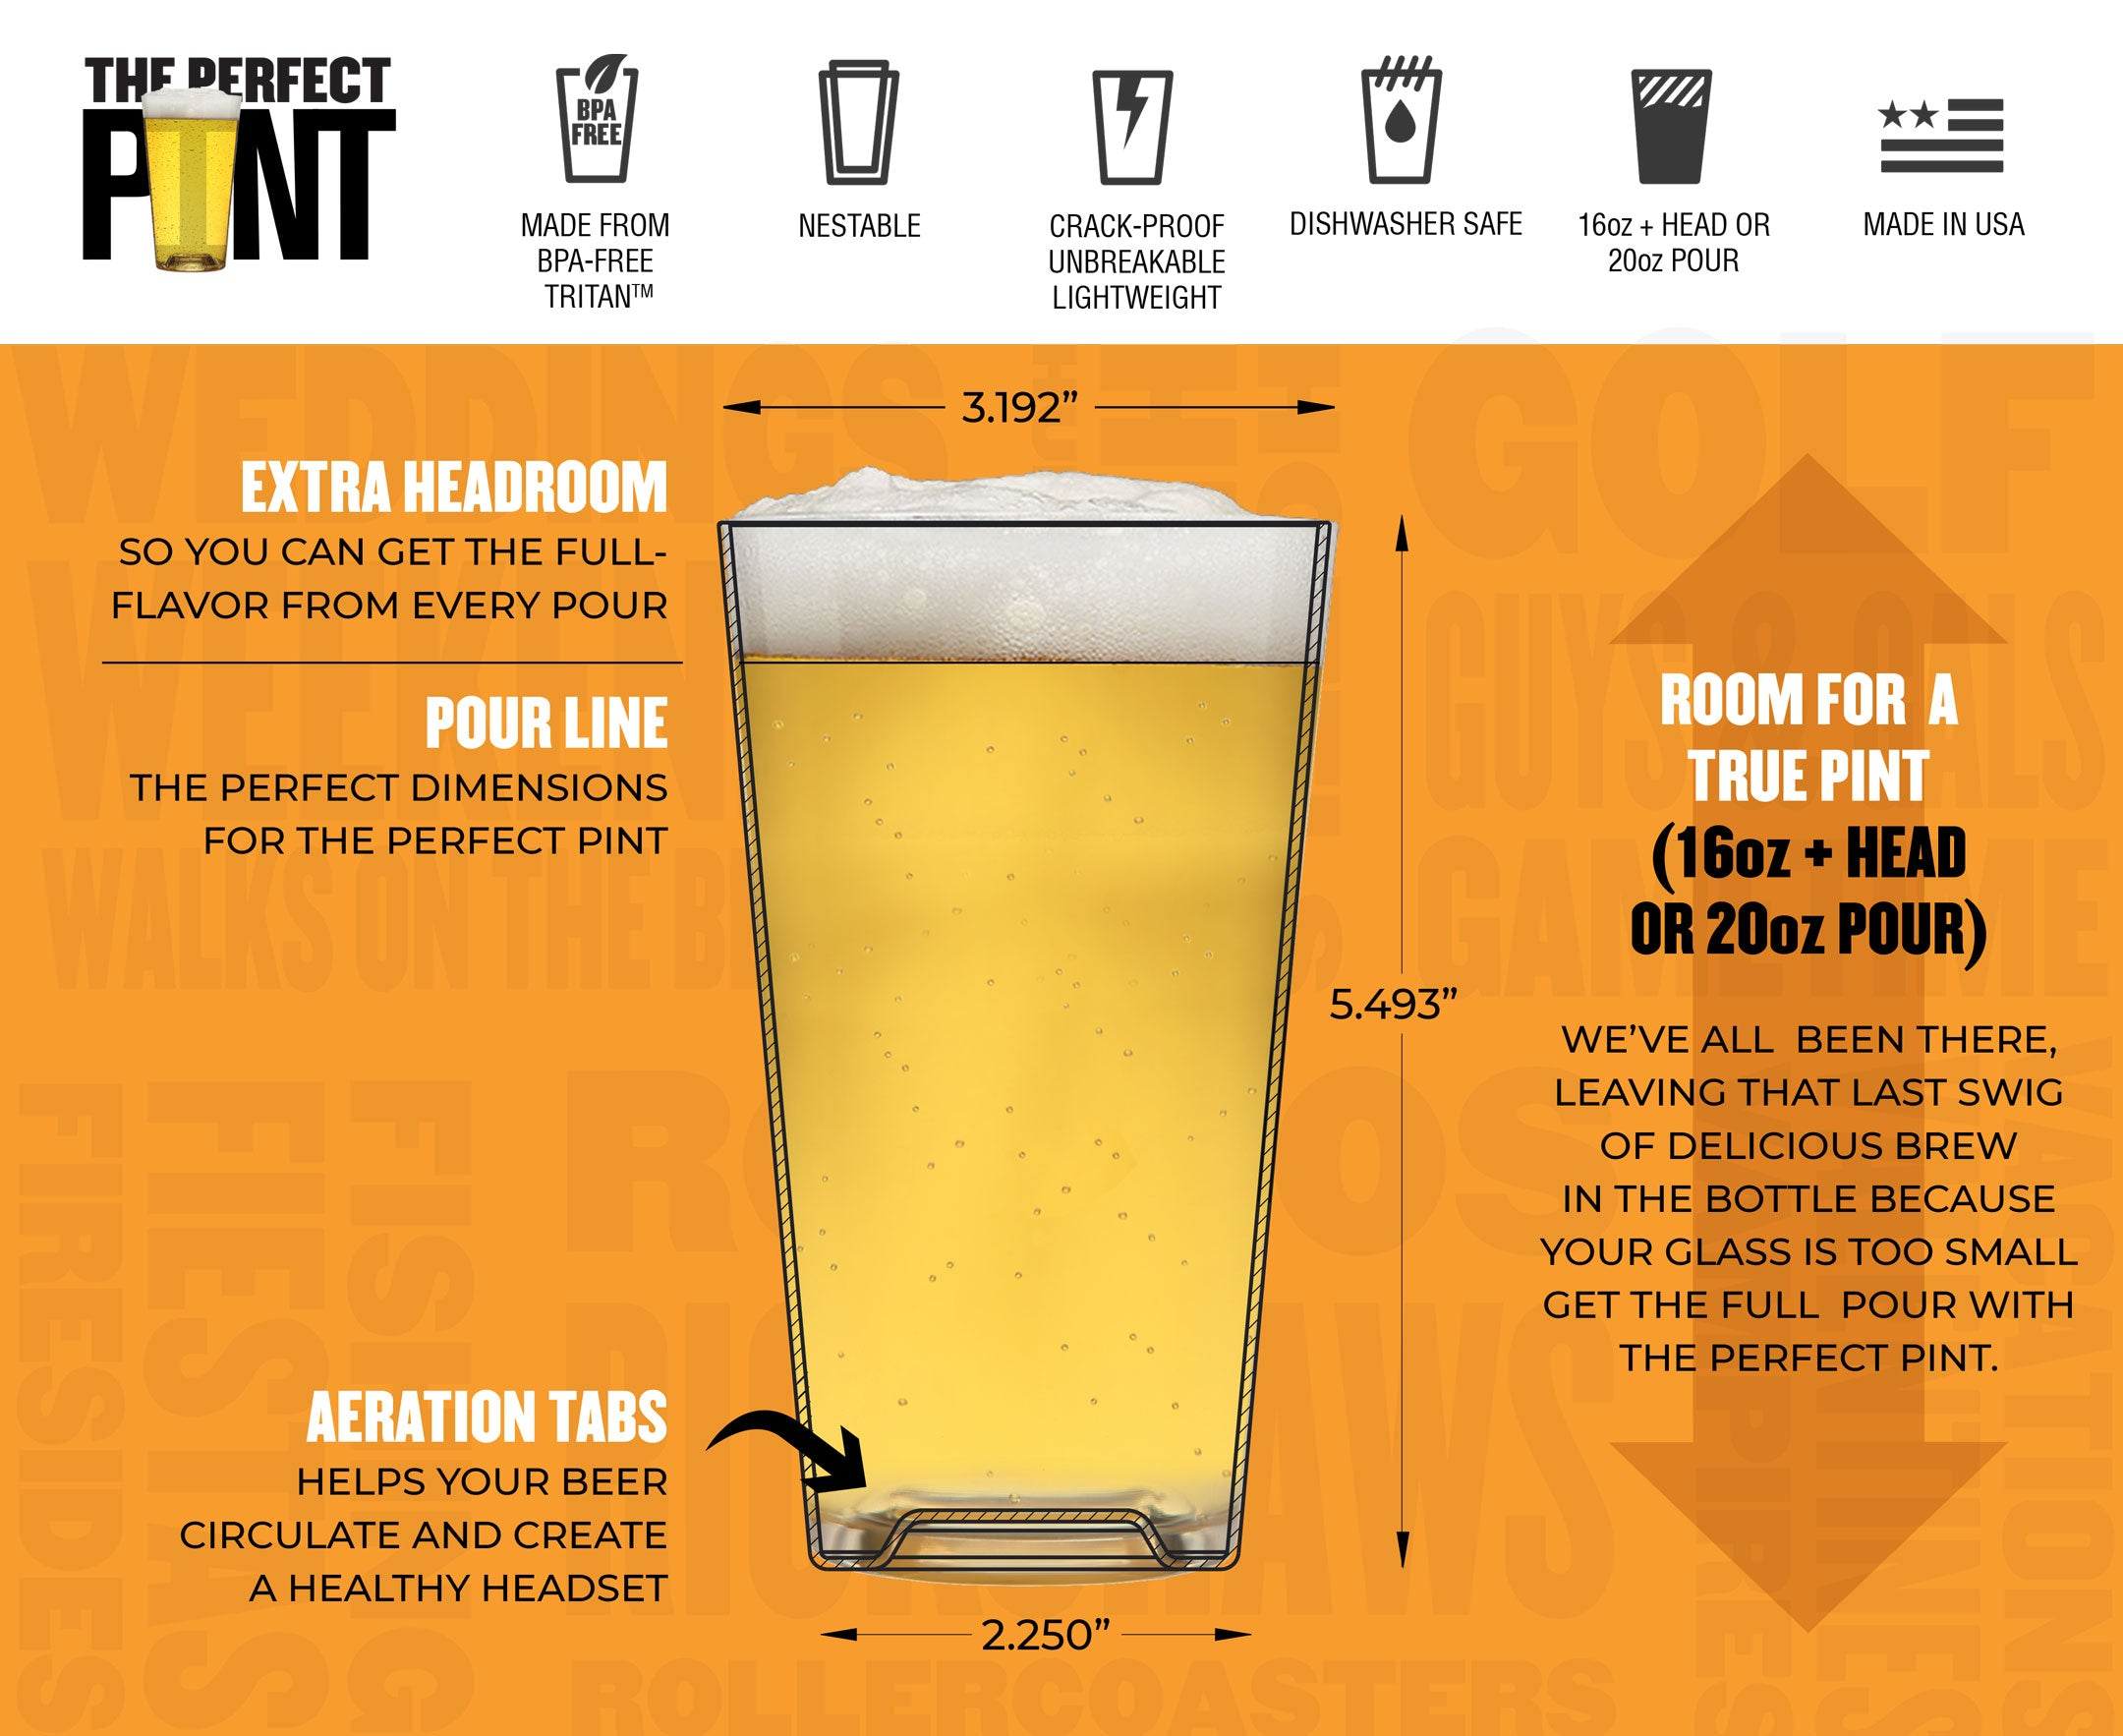 The Perfect Pint Healthy Head Attributes